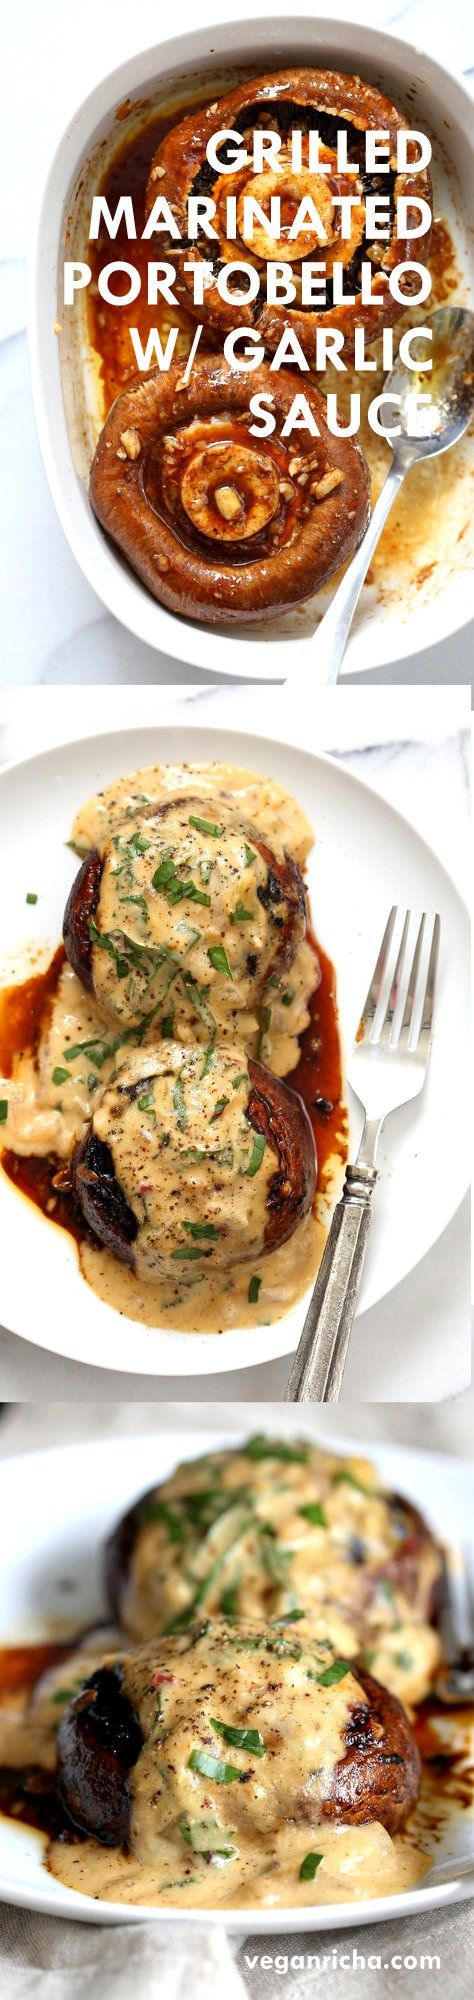 Grilled Portobello Mushrooms with Garlic Sauce. Grilled or Baked Marinated Portabella Mushrooms served with creamy gravy. #Vegan